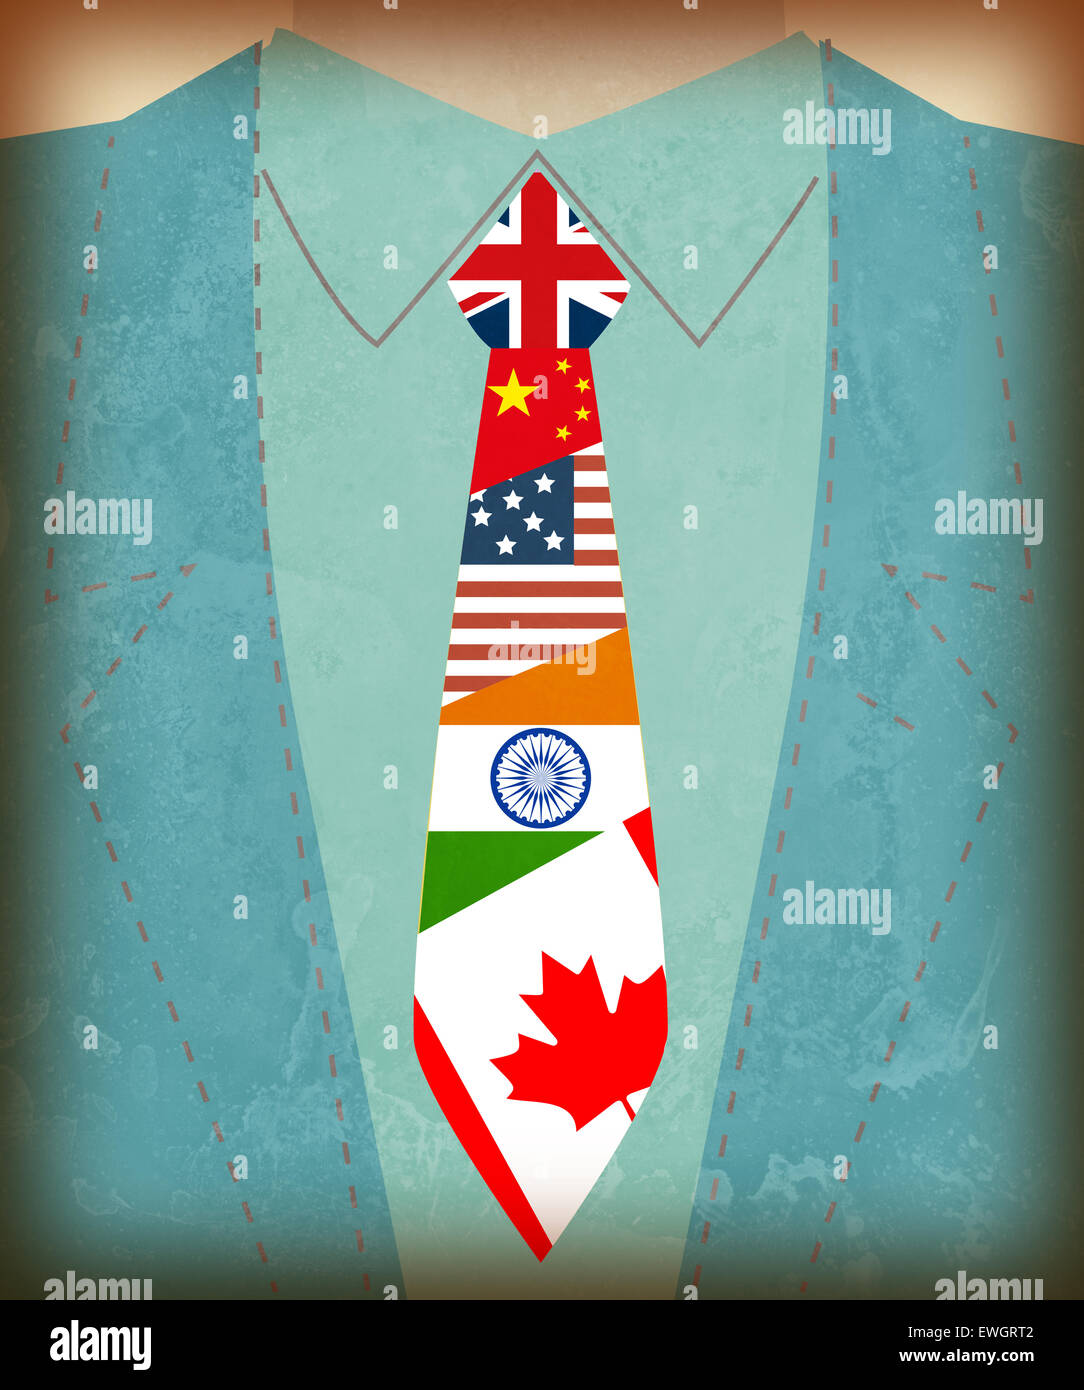 Midsection view of businessman with international flag symbols on tie - Stock Image